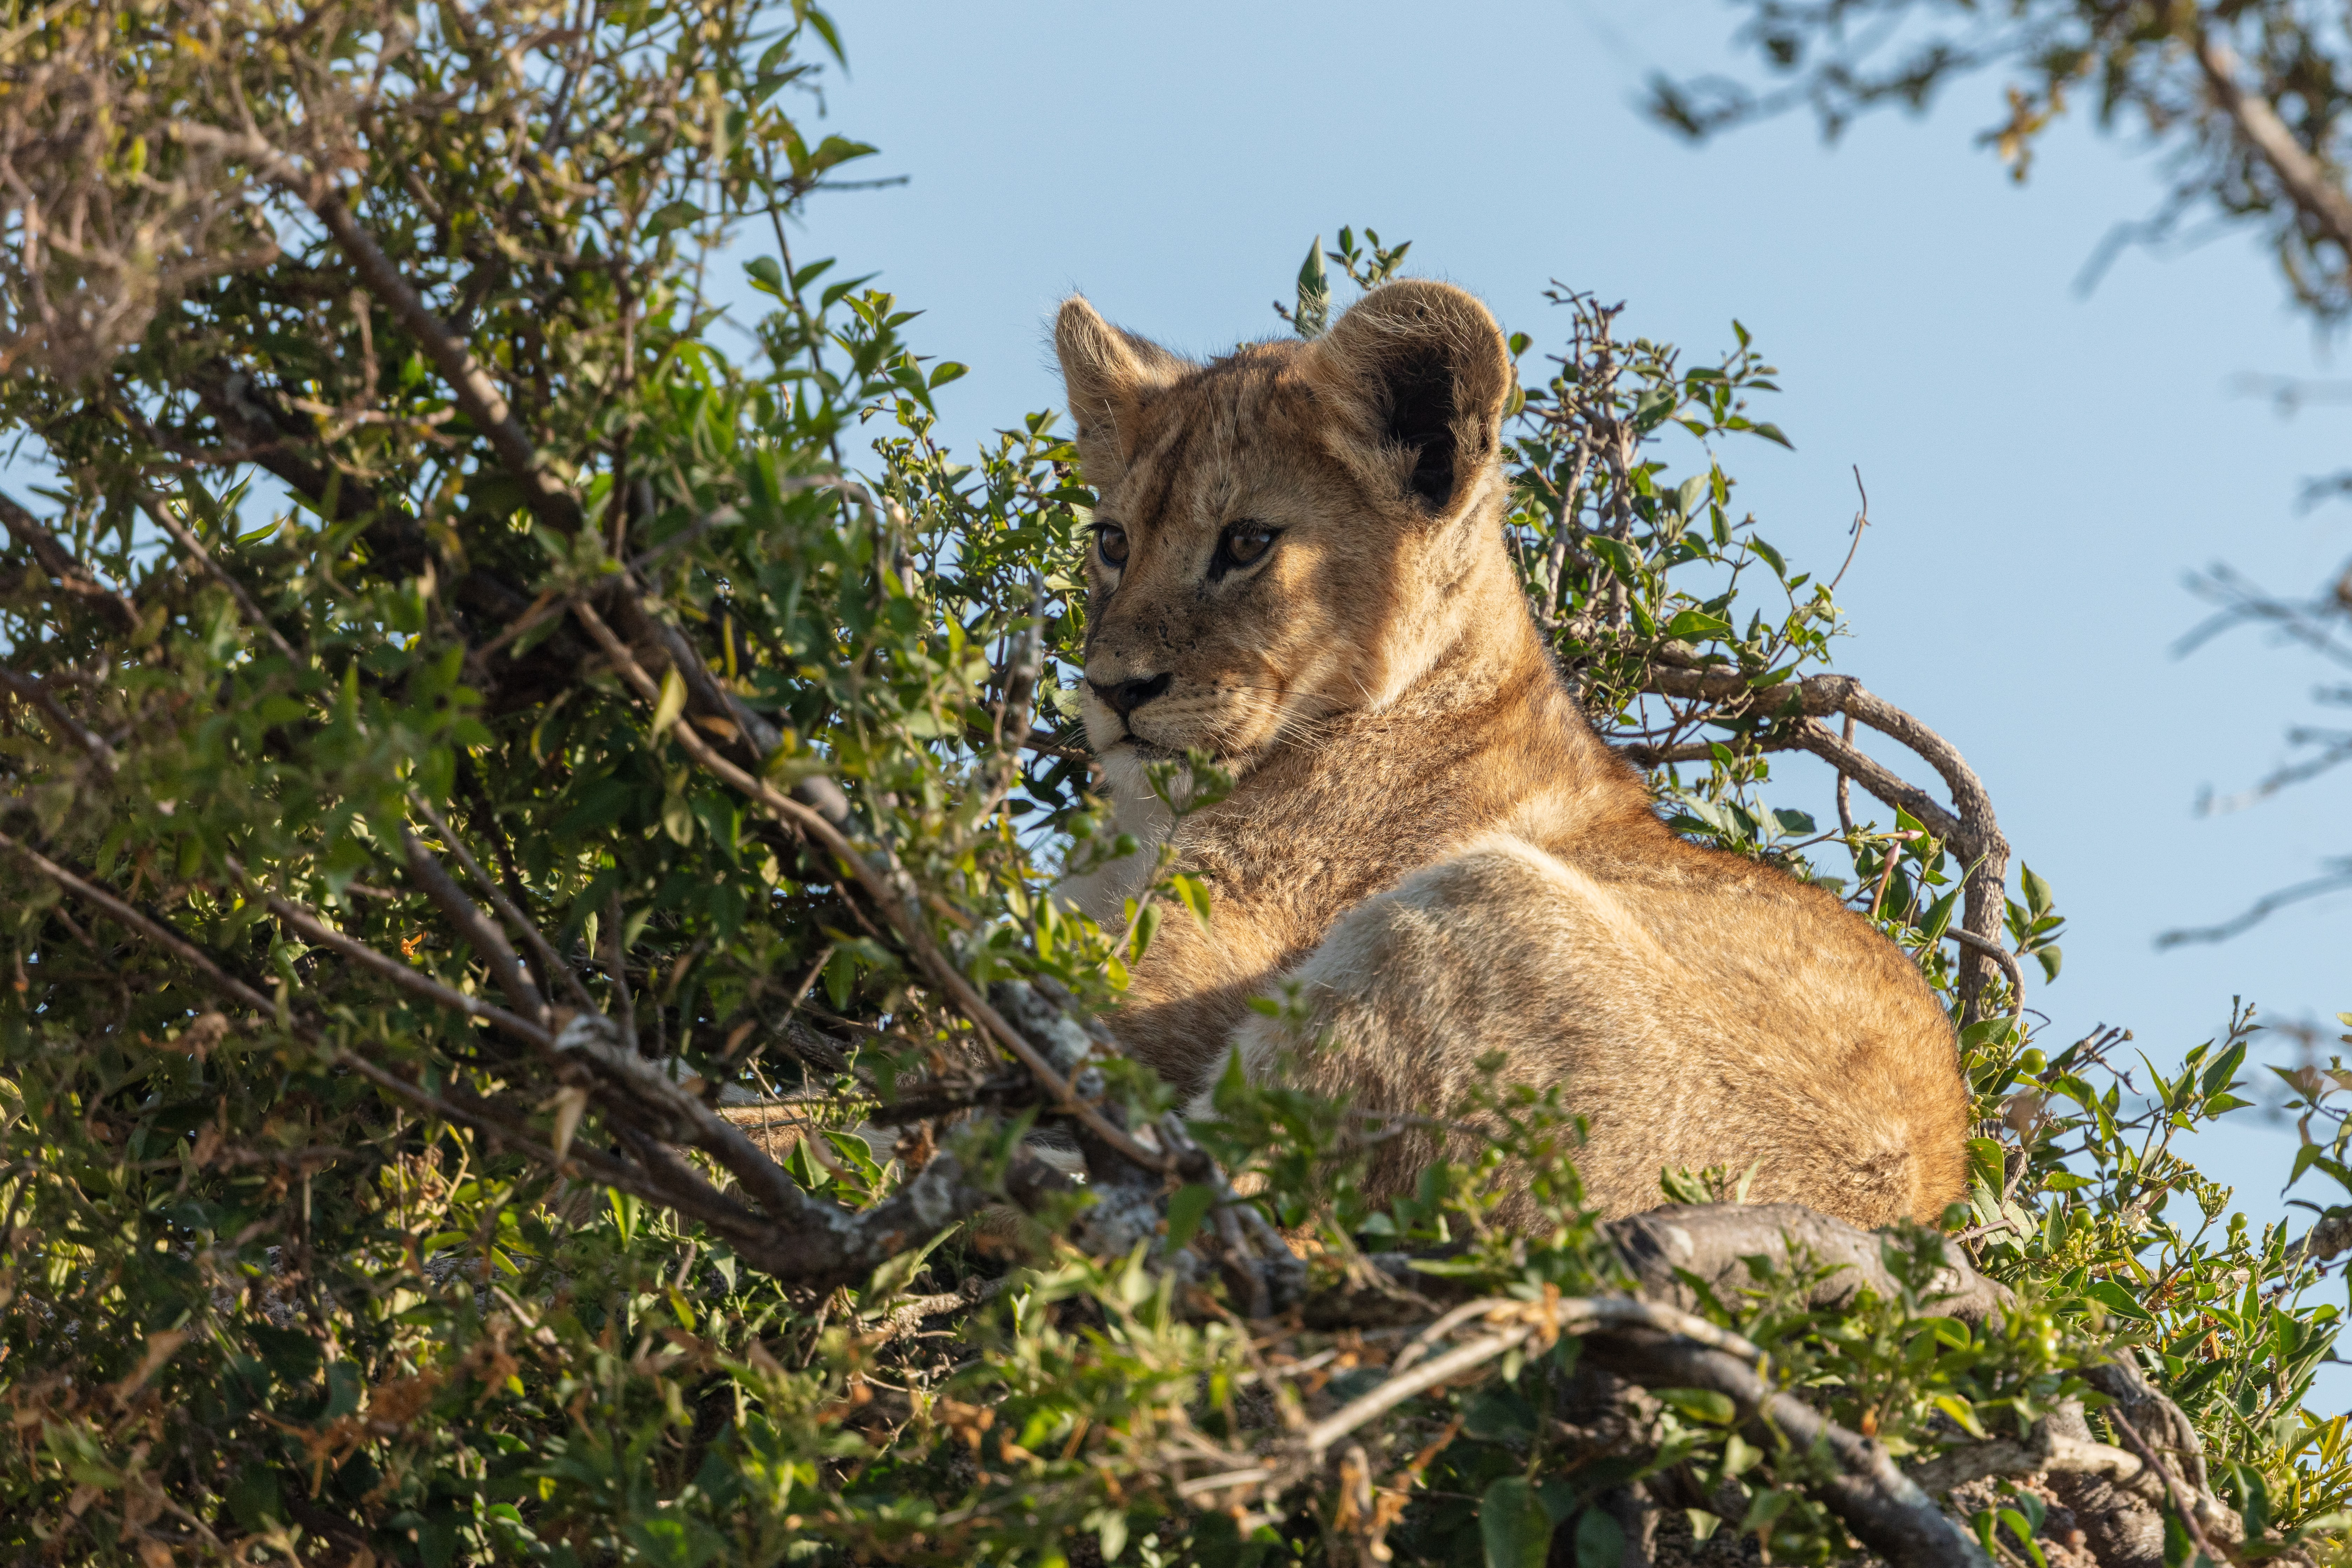 103741 download wallpaper Animals, Lion Cub, Lion, Animal, Branch, Wildlife screensavers and pictures for free